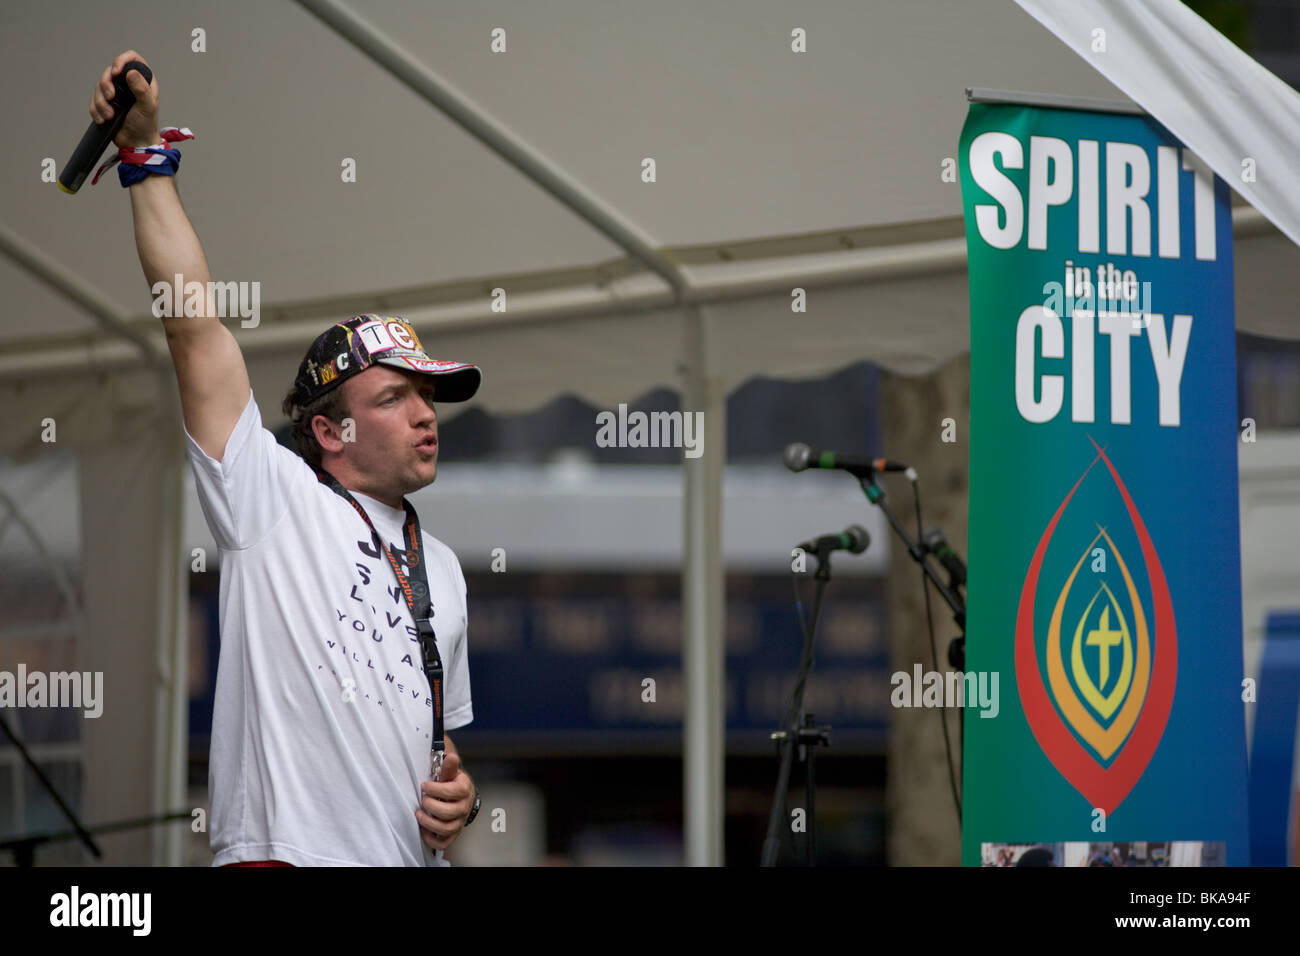 Christian rapper MC Tempo performs at Spirit in the City event Leicester Square June 2009 Stock Photo